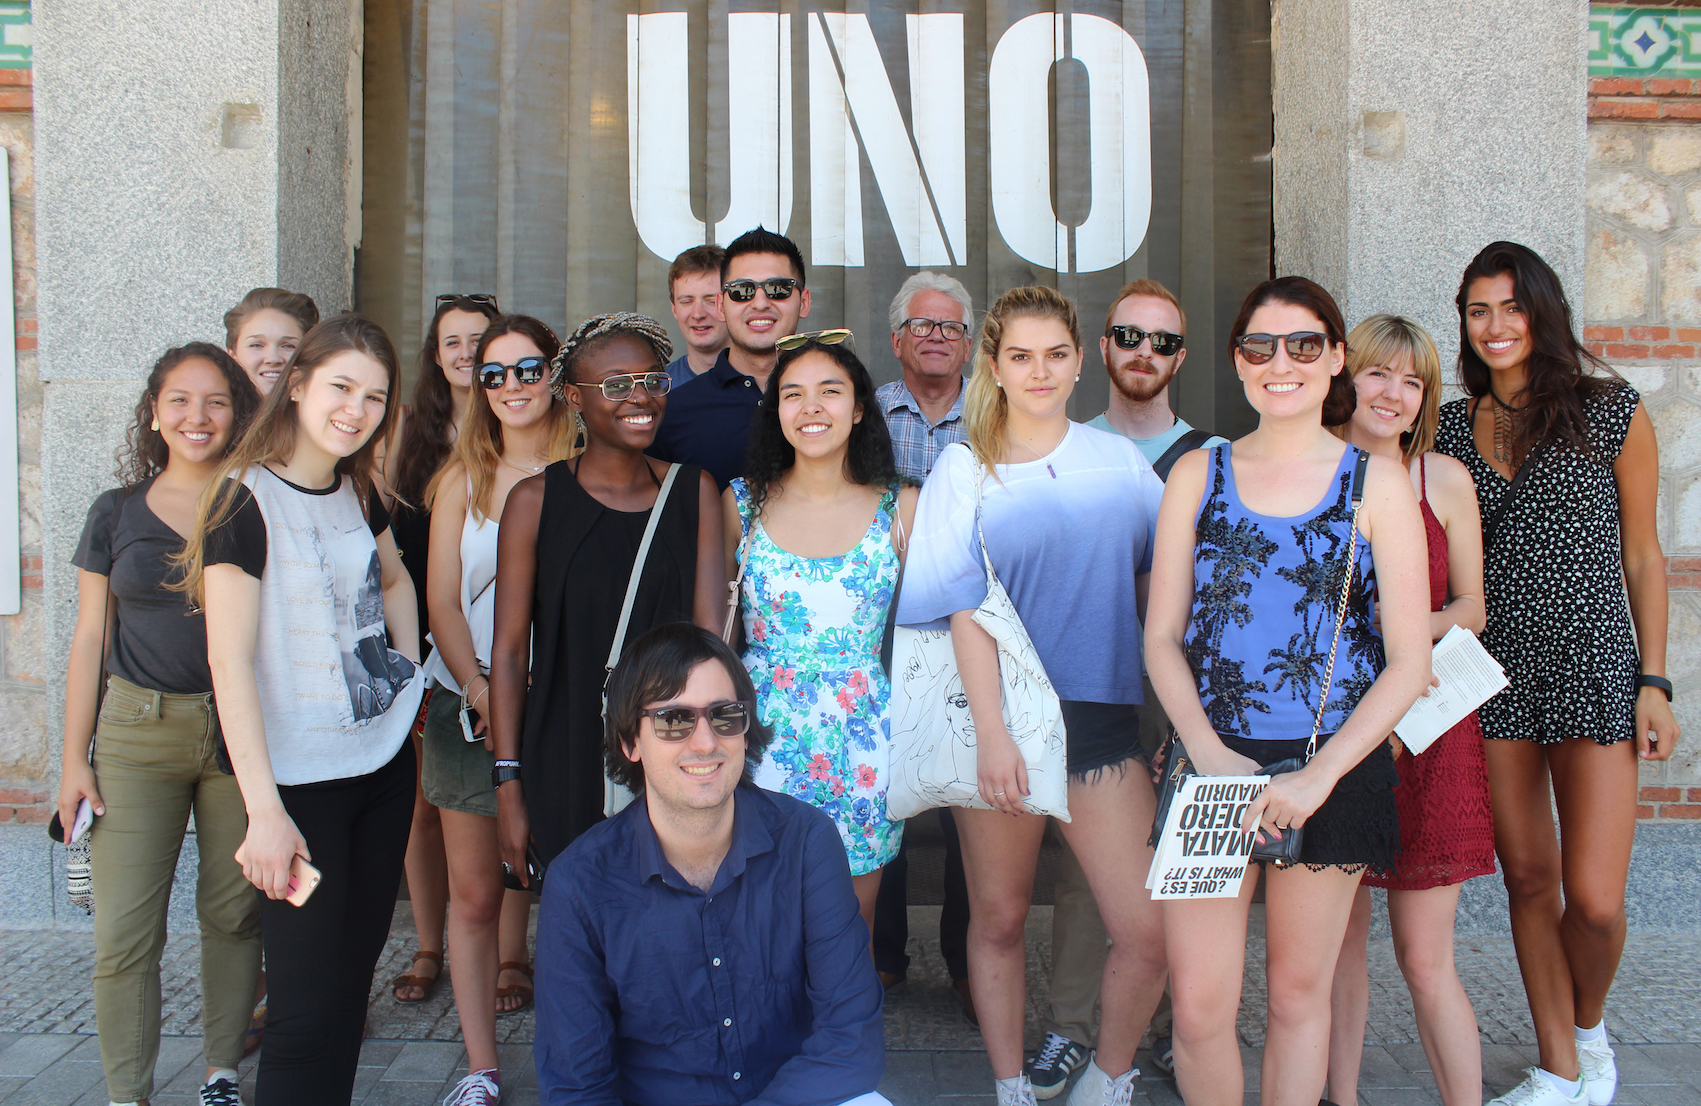 Interns posing for a photo